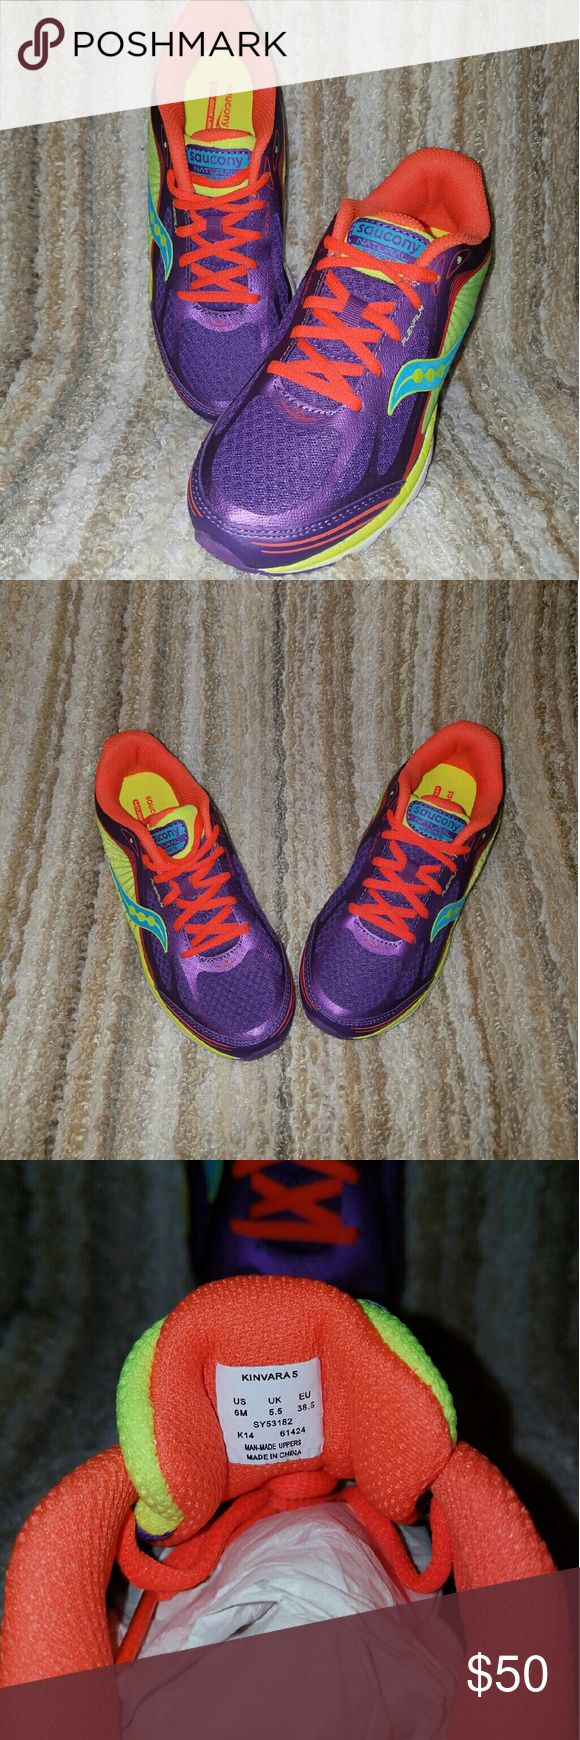 Women's Athletic Shoes Kinvara S Athletic shoes. Excellent condition. Never worn. Purple, orange and yellow in color. Saucony Shoes Athletic Shoes